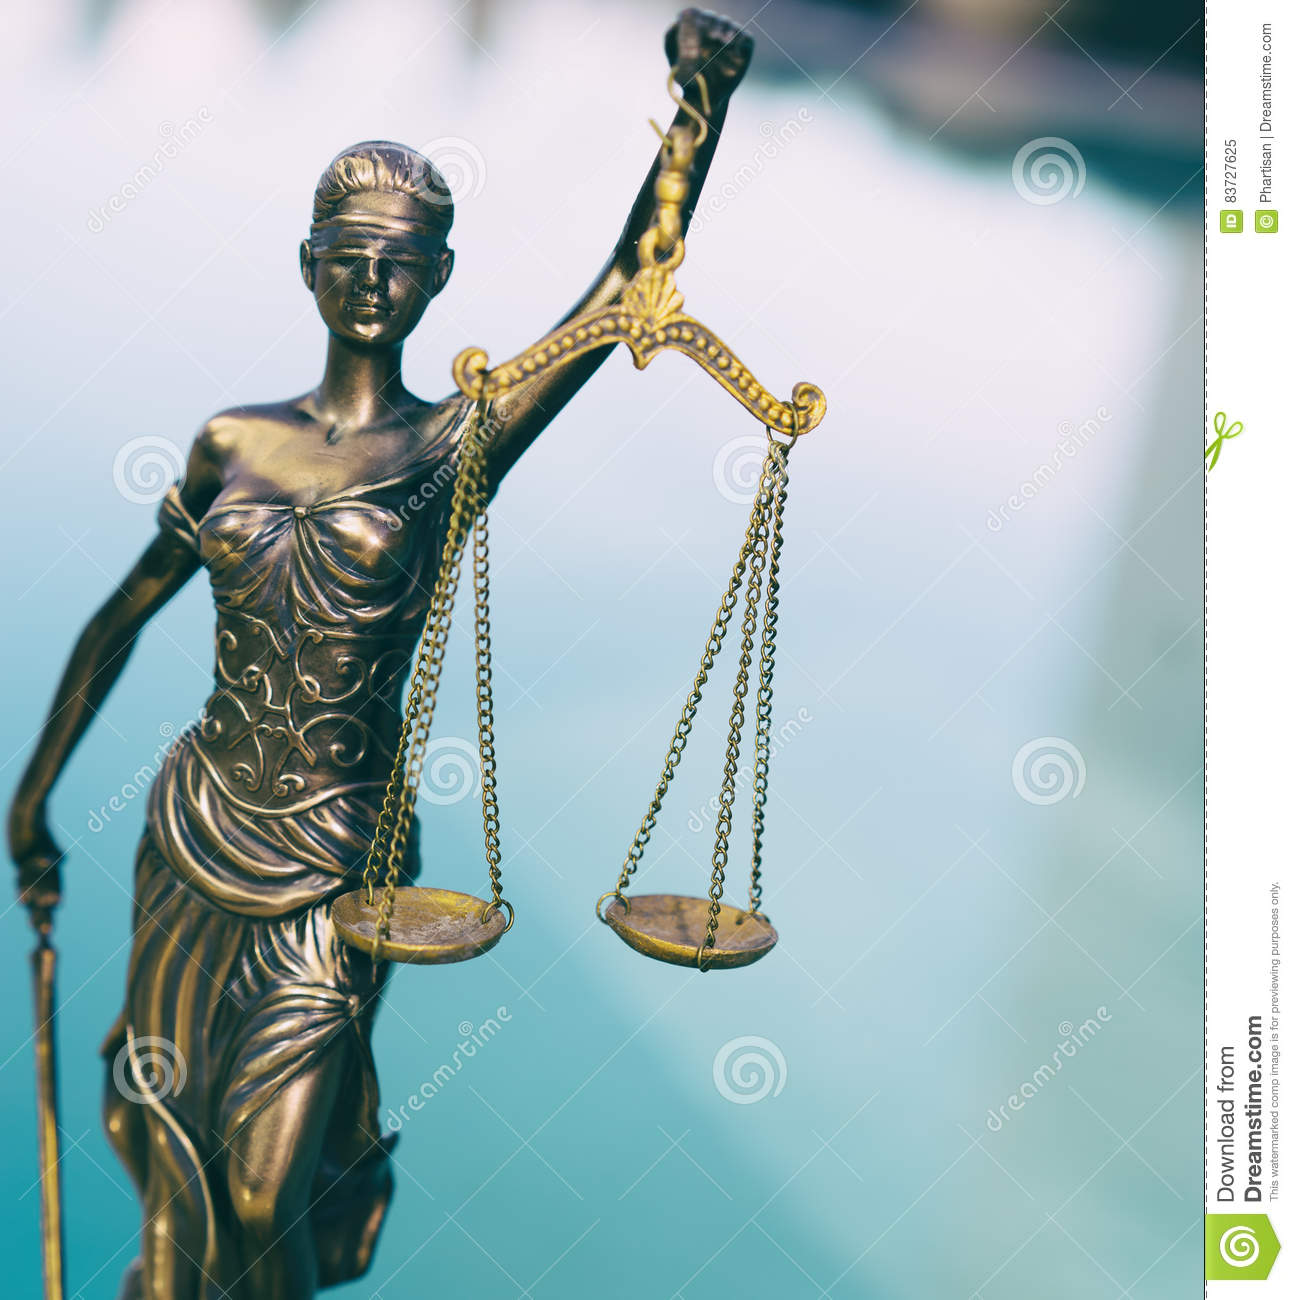 Scales of justice symbol legal law concept image stock image scales of justice symbol legal law concept image judge equality buycottarizona Images